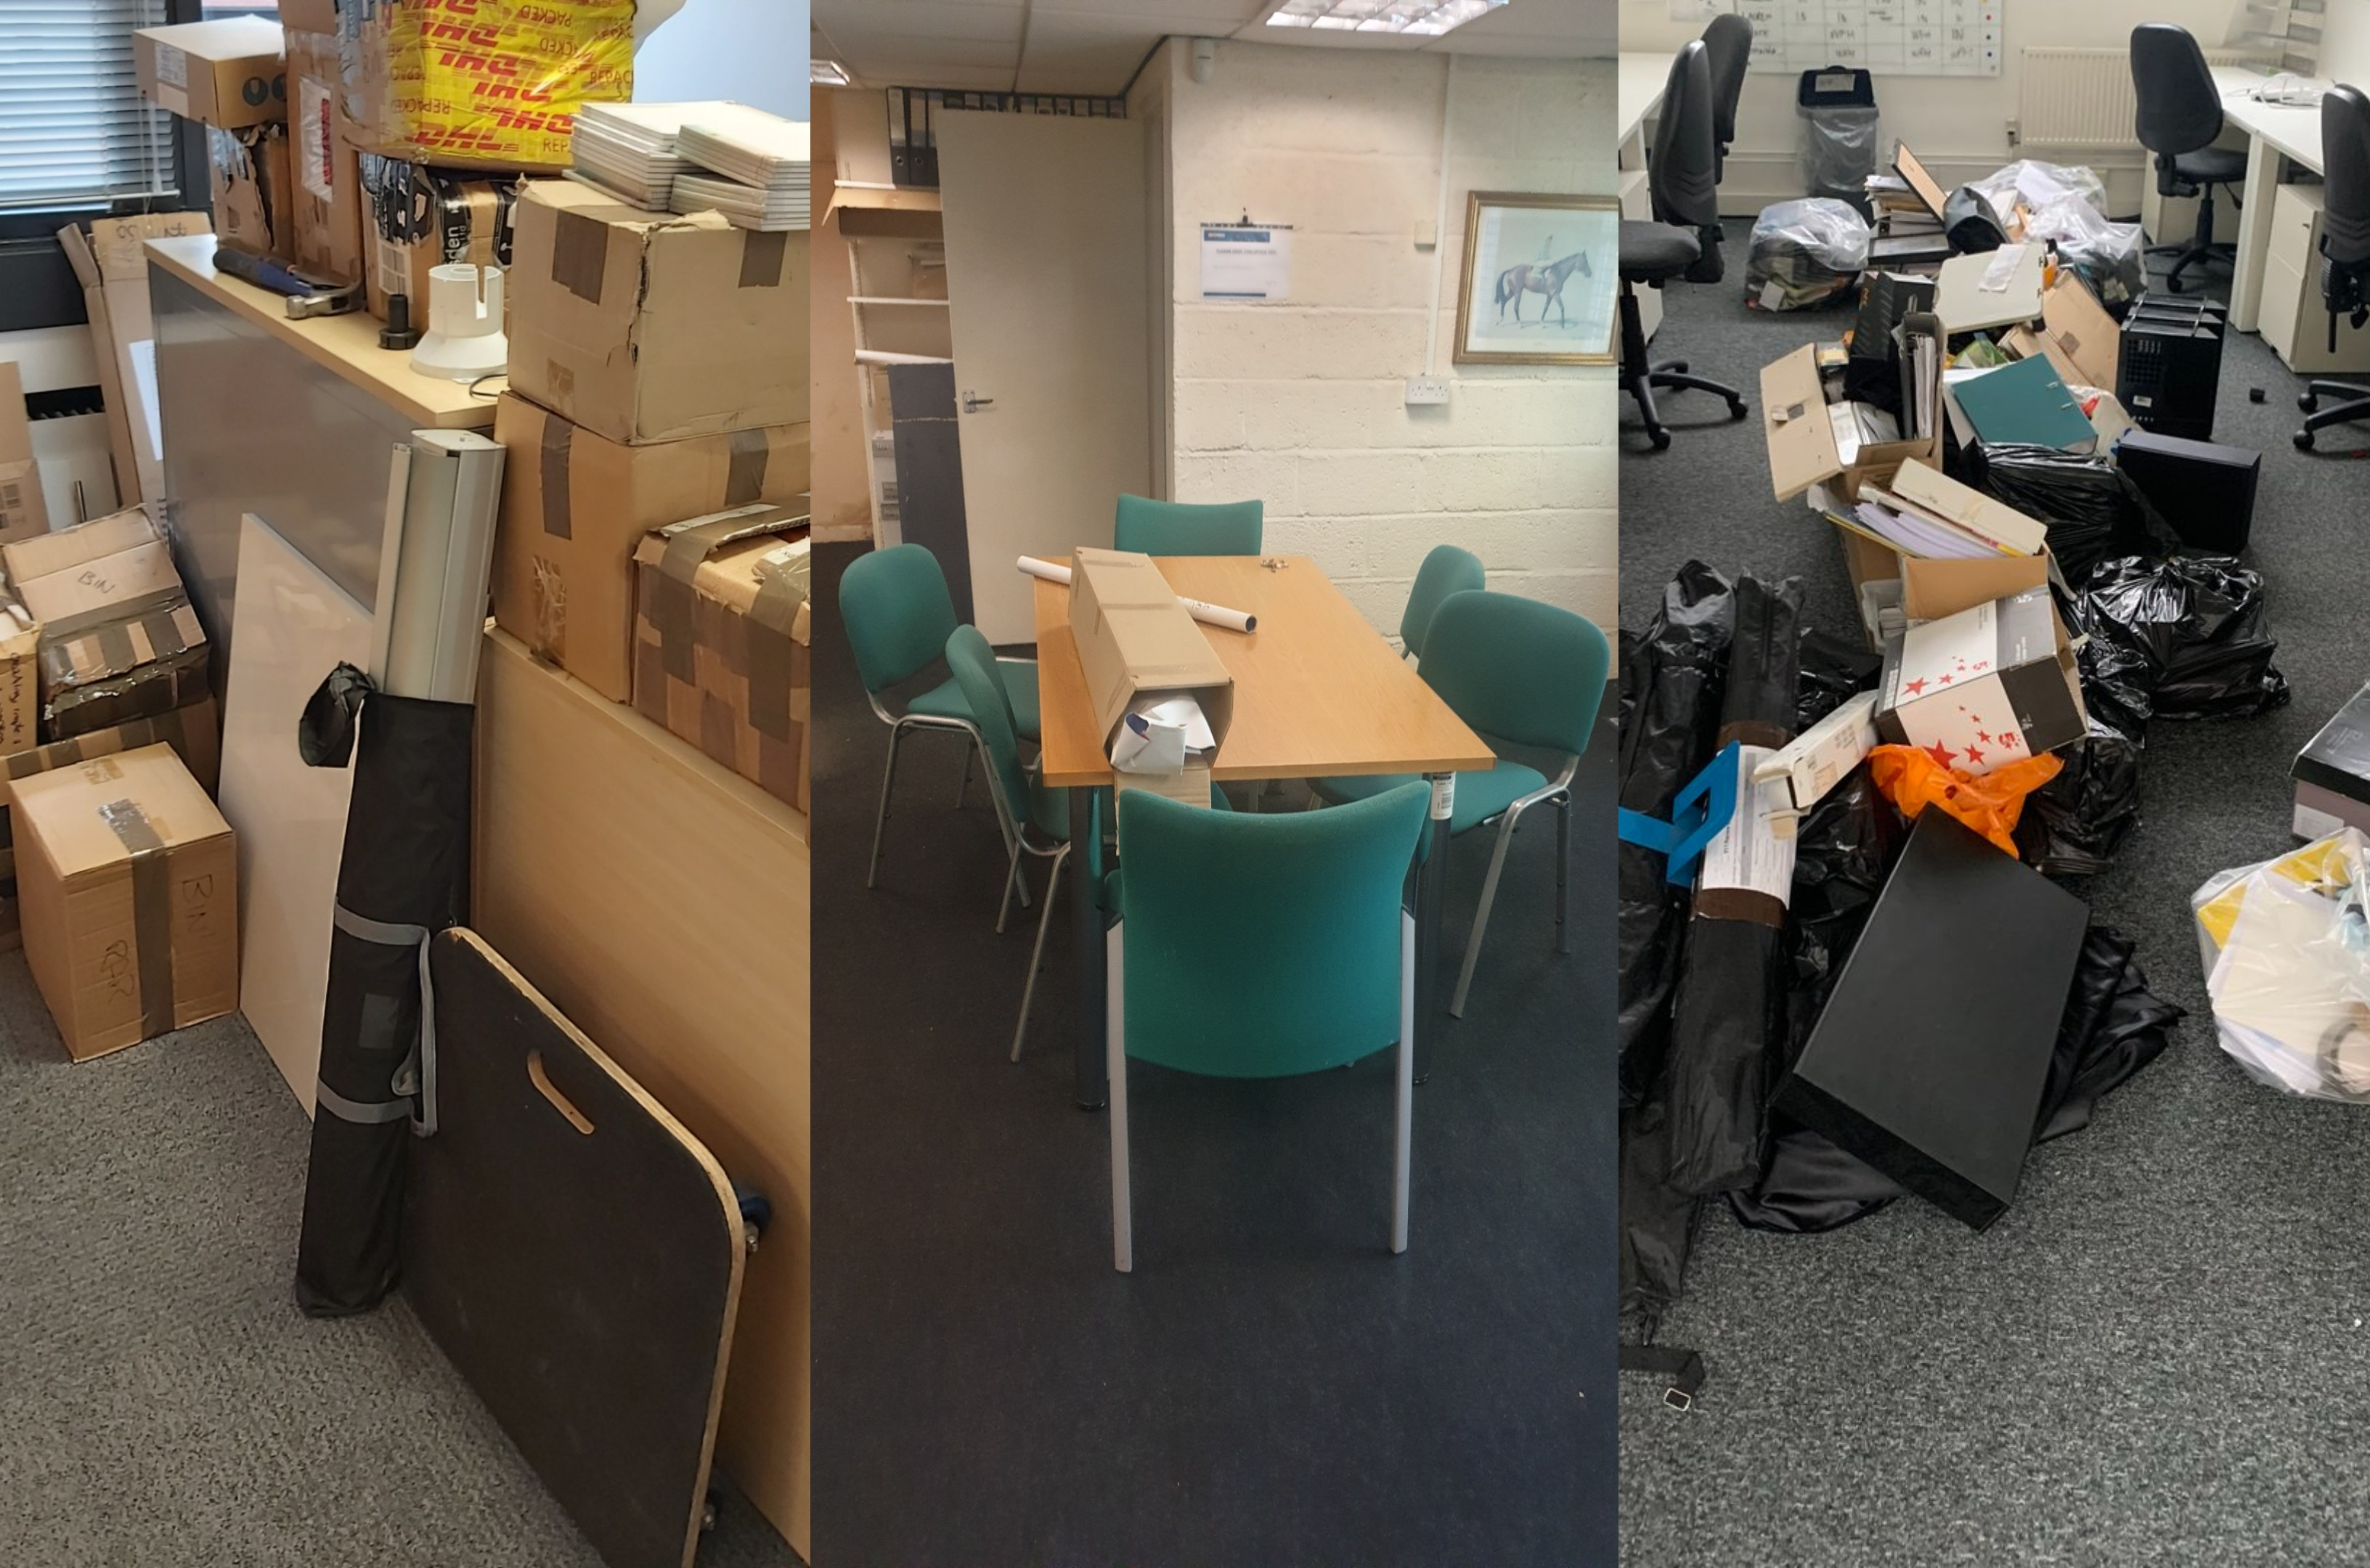 office furniture collage how to dispose of office furniure office clearance clear-out monitors desks lights